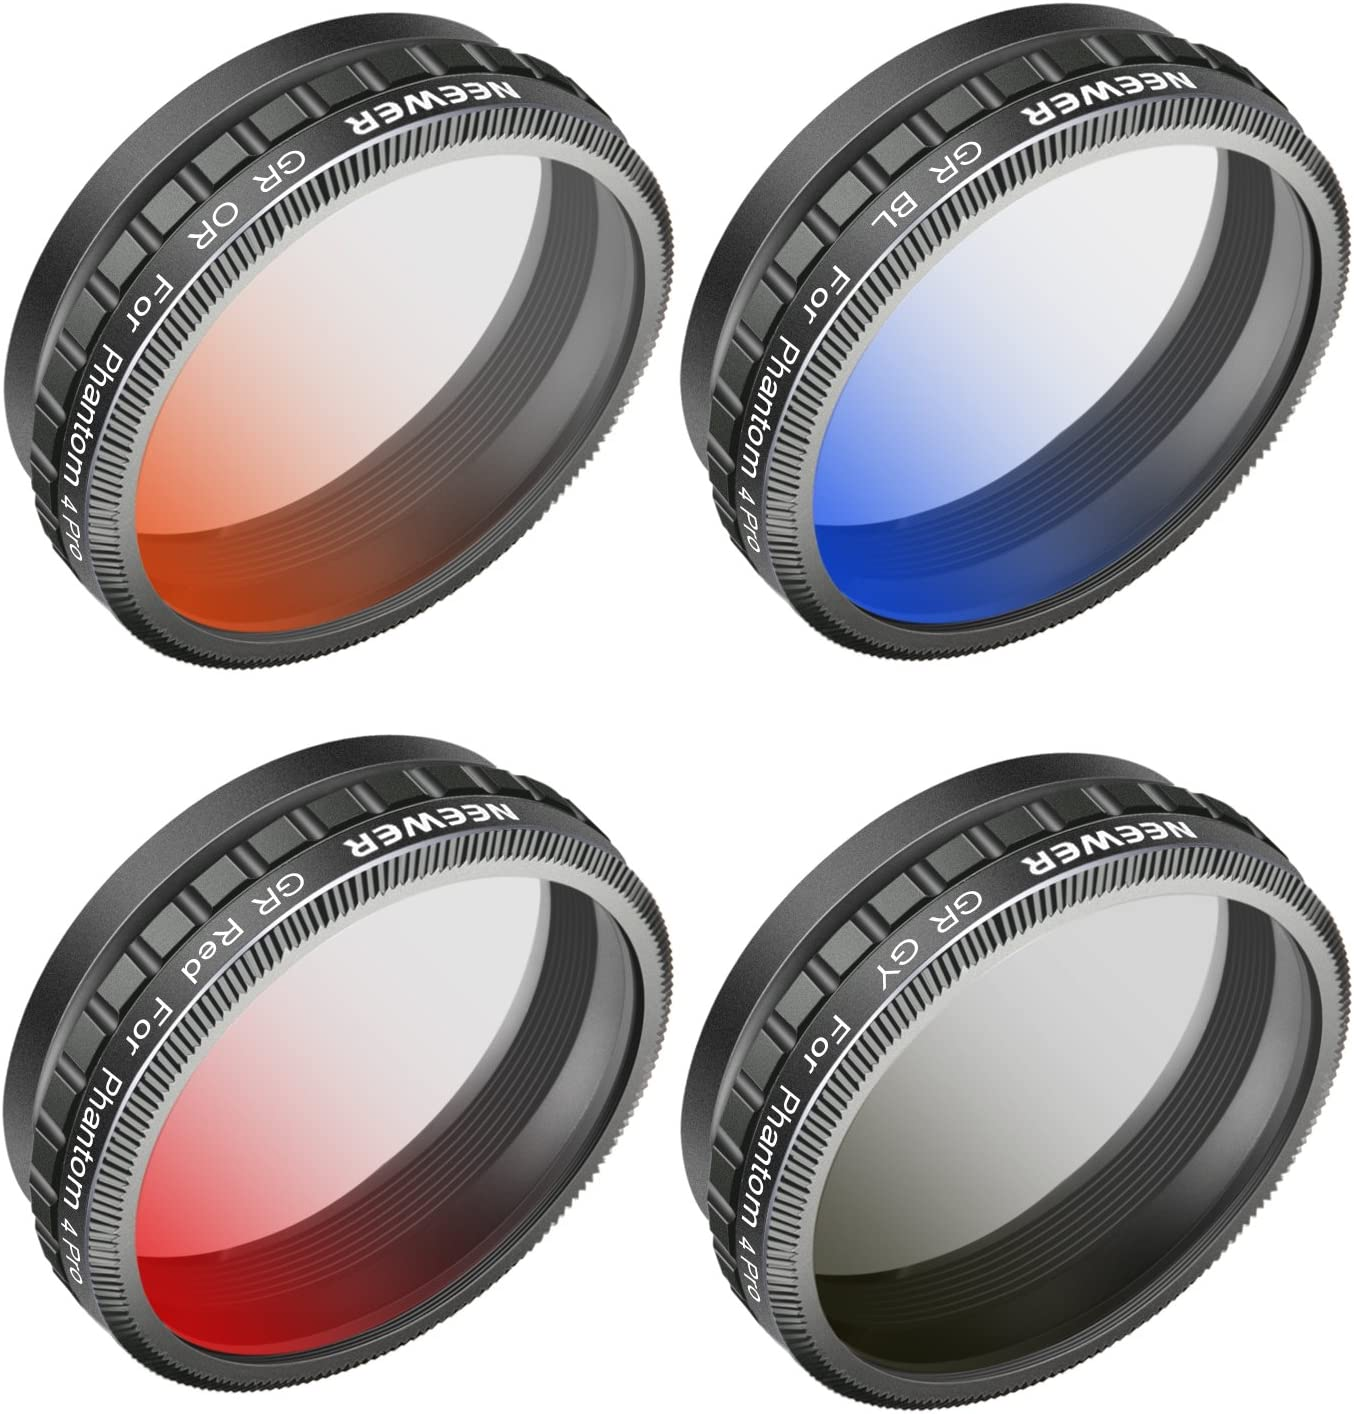 Neewer Camera Lens Graduated Color Filter Kit for DJI Phantom 4 Pro Drone Quadcopter: Graduated Orange Blue Grey Filter Red Made of HD Optical Glass and Aluminum Alloy Frame